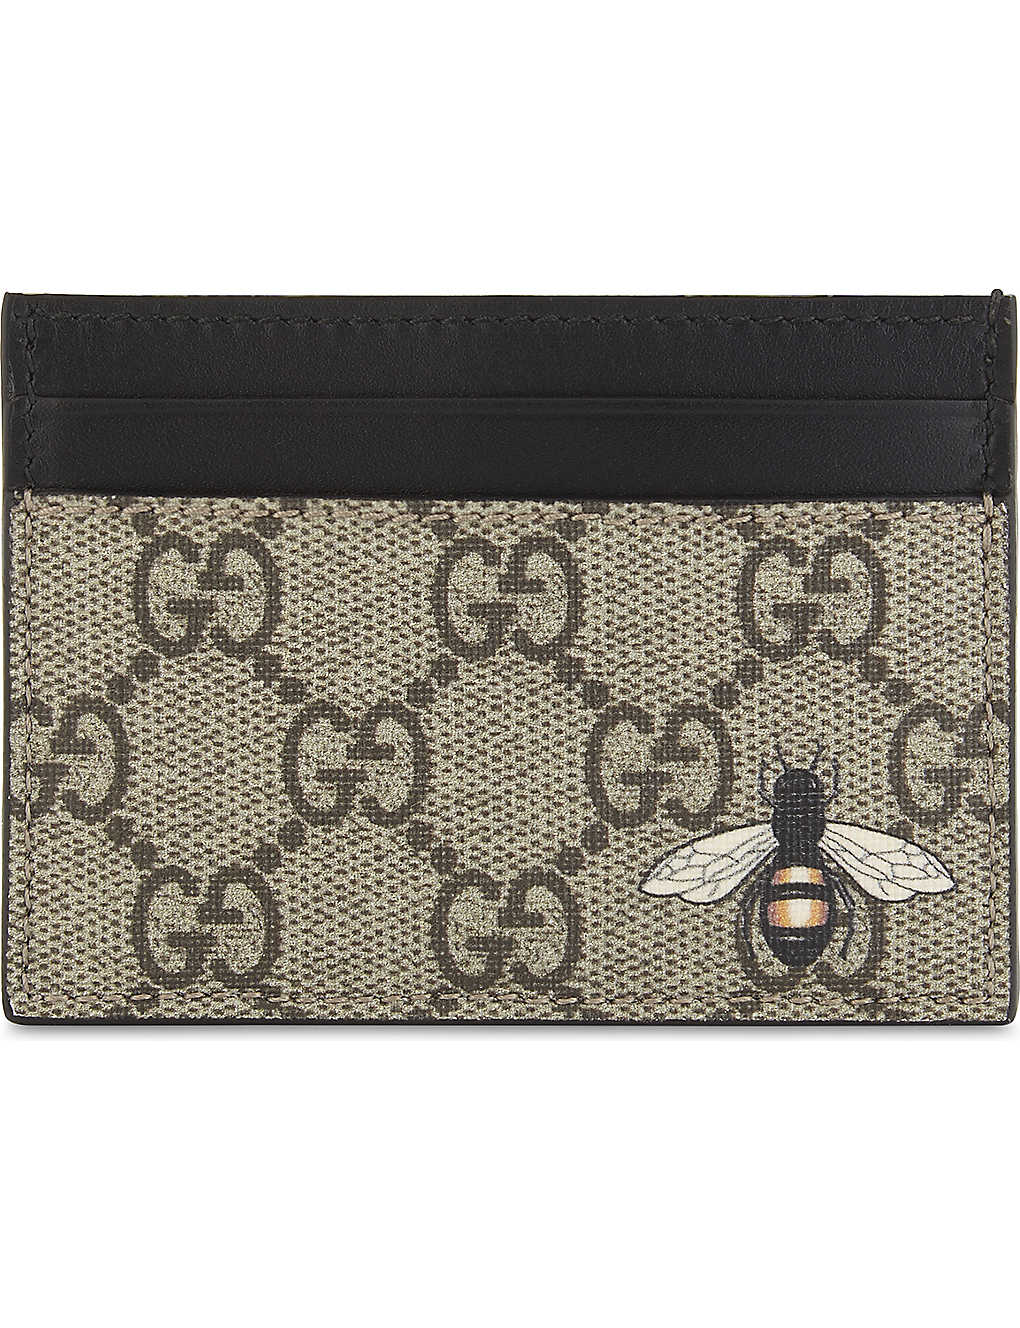 211520cbef7 GUCCI - Bestiary GG Supreme card holder